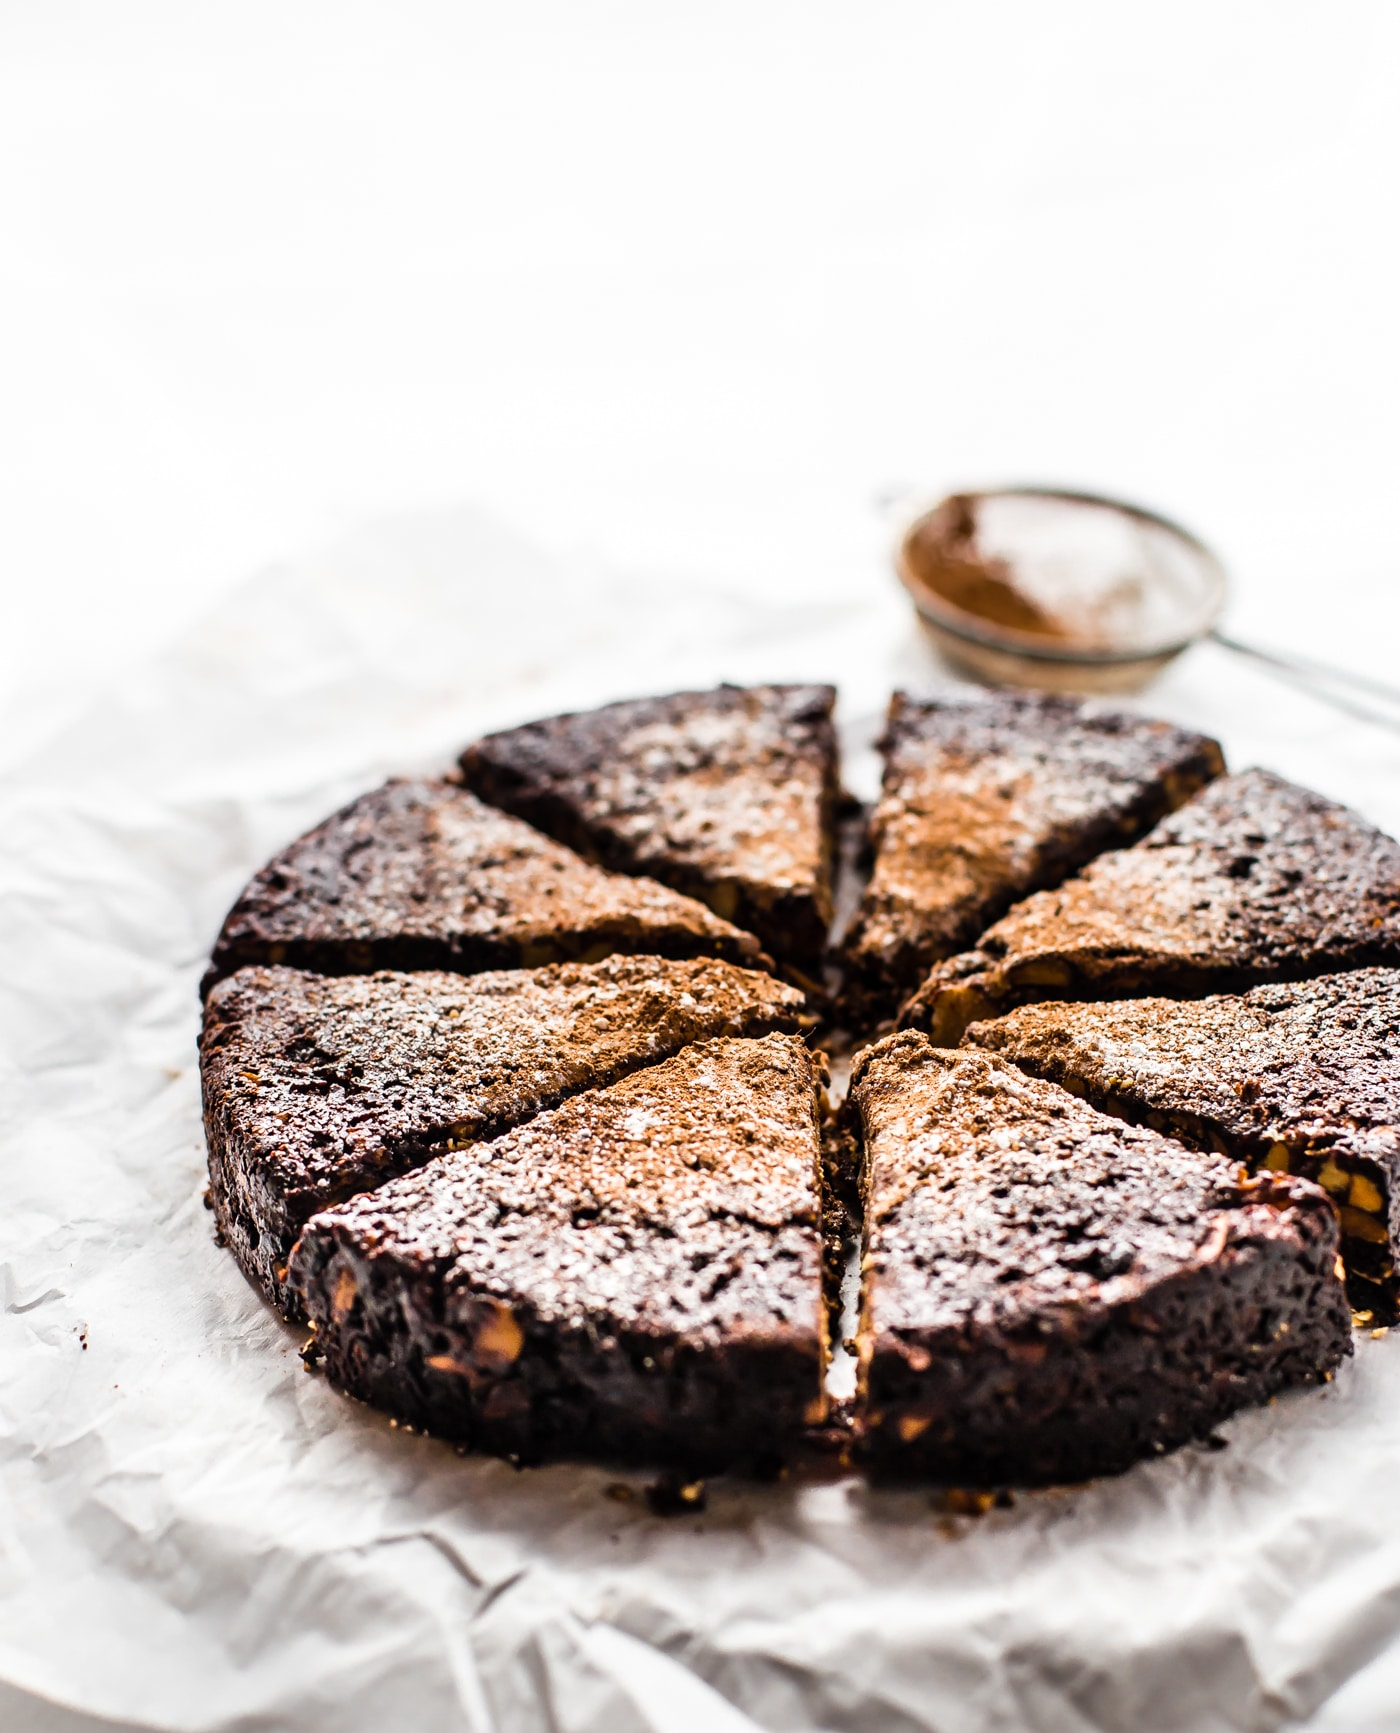 A chocolate Christmas cake cut into triangles, dusted with cocoa powder